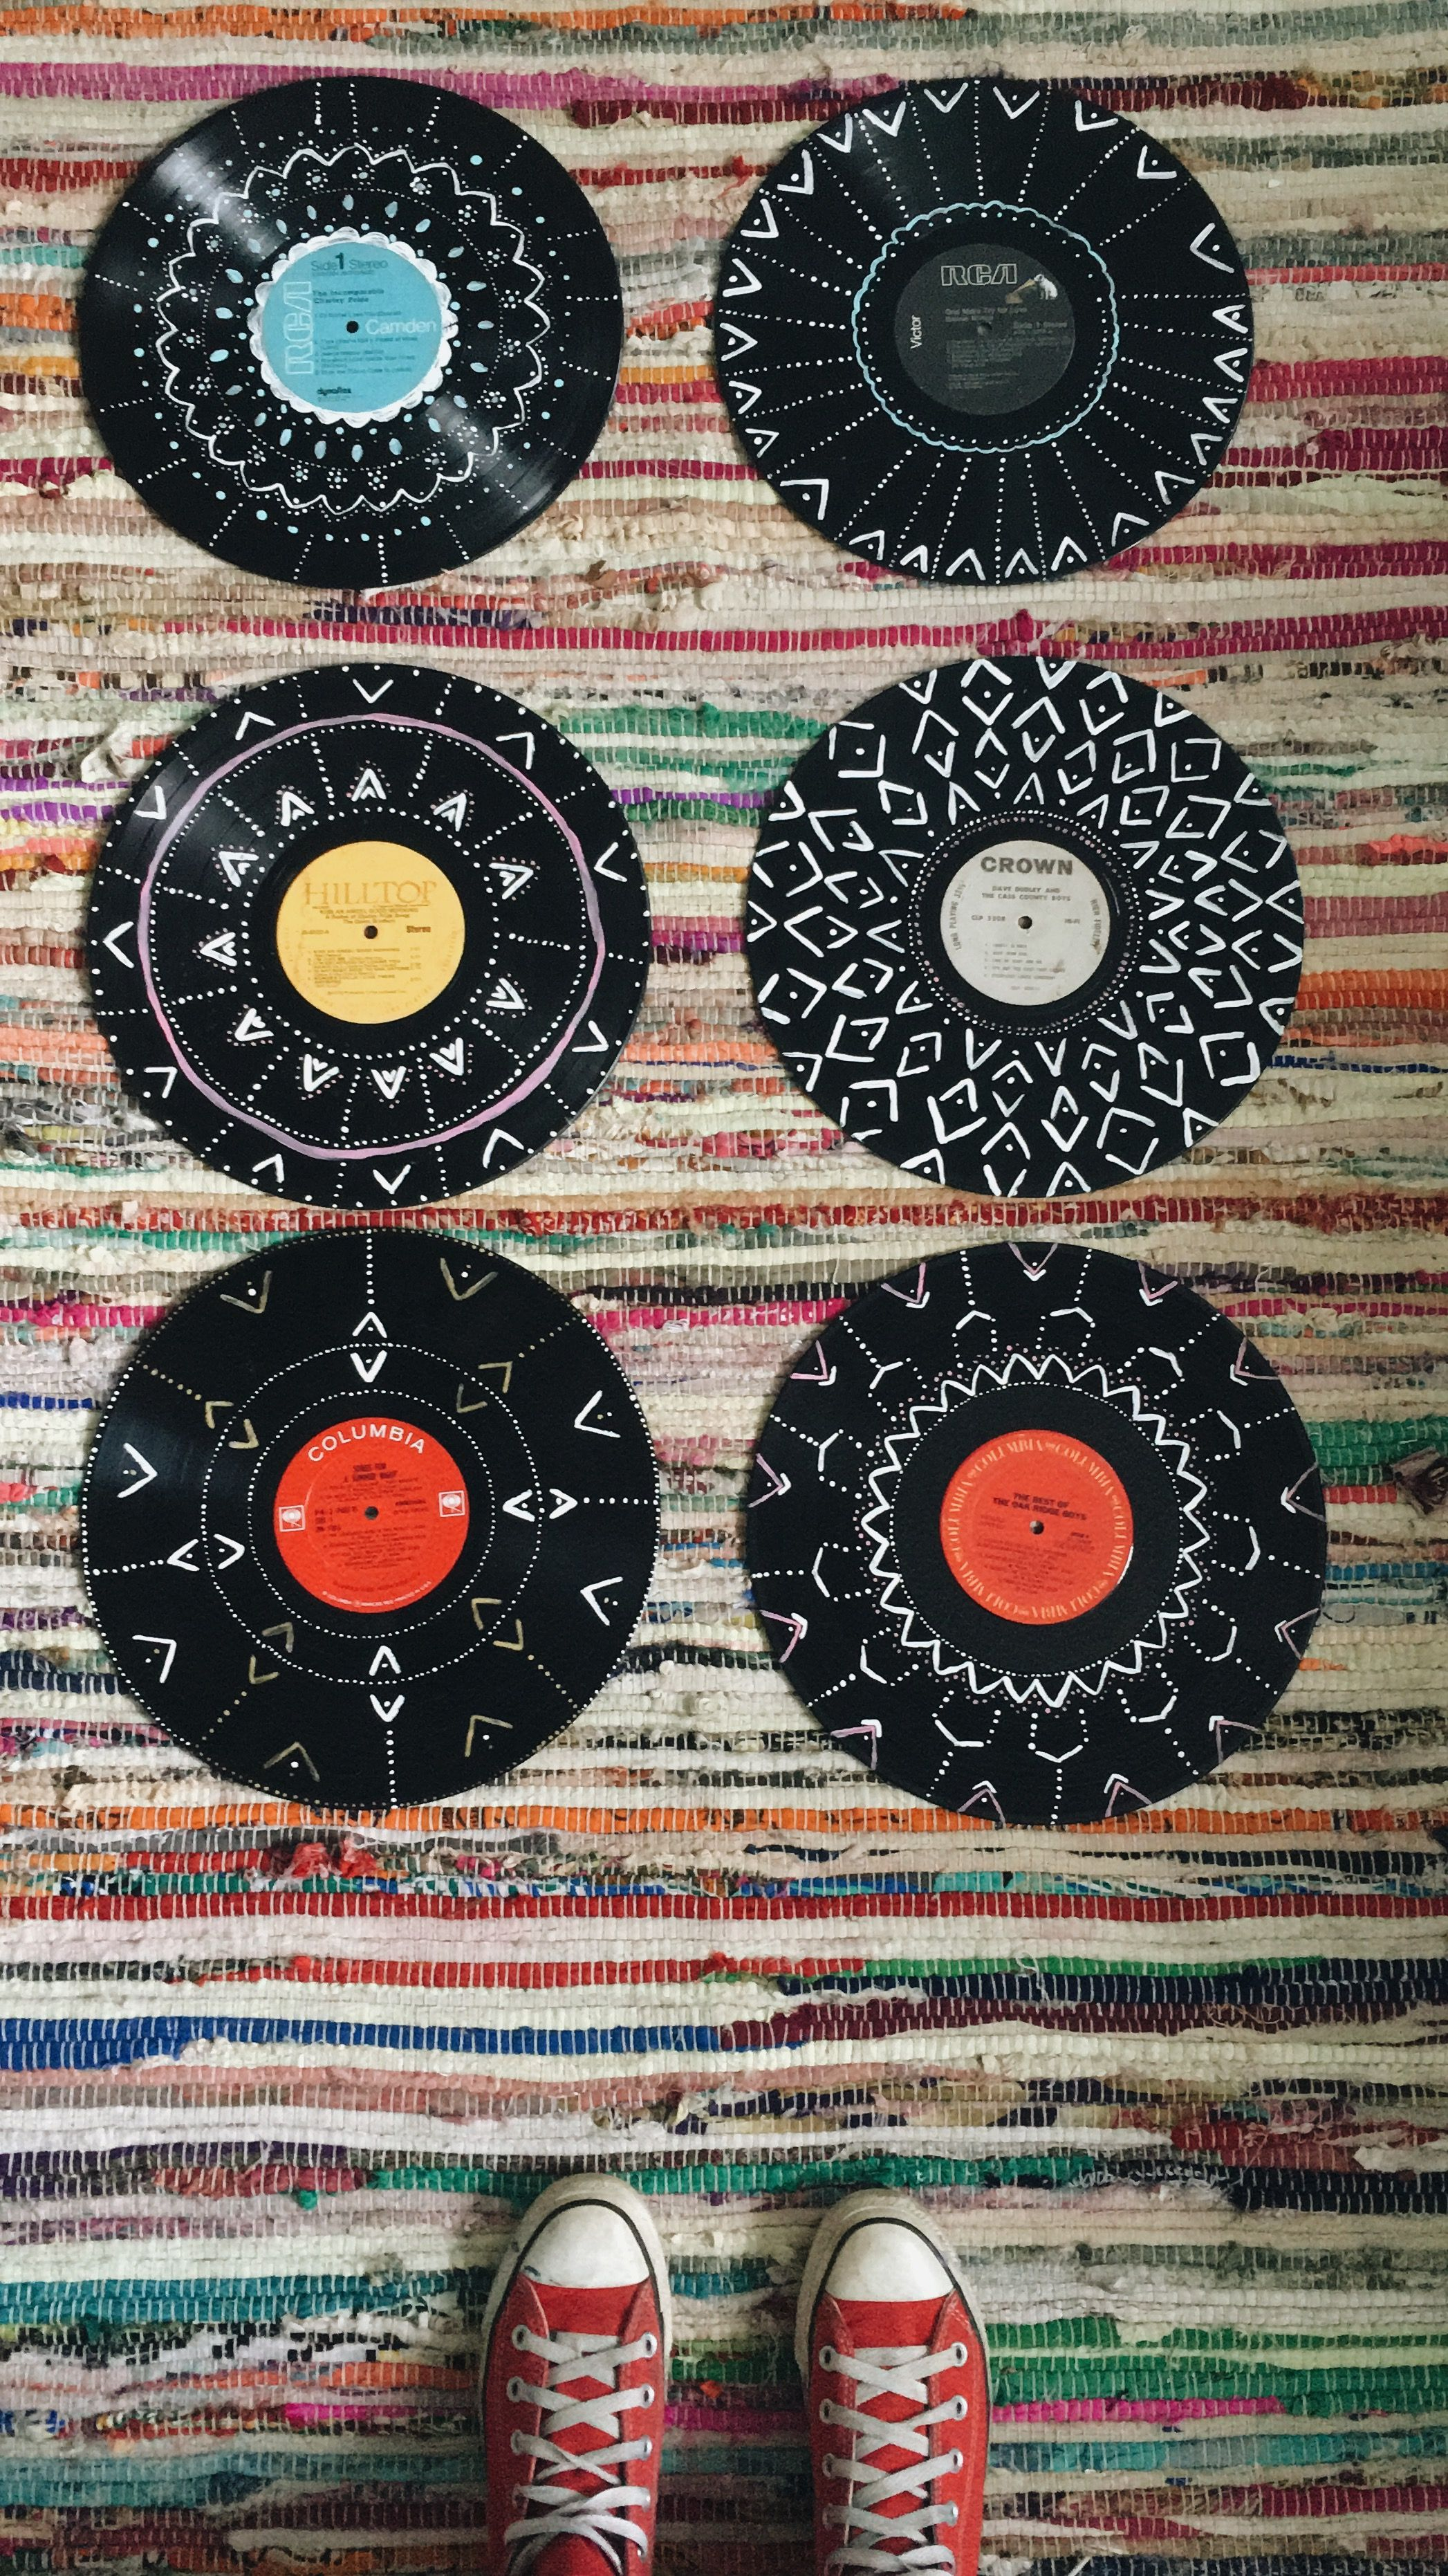 Painted Old Records In 2019 Vinyl Record Art Vinyl Art Record Art